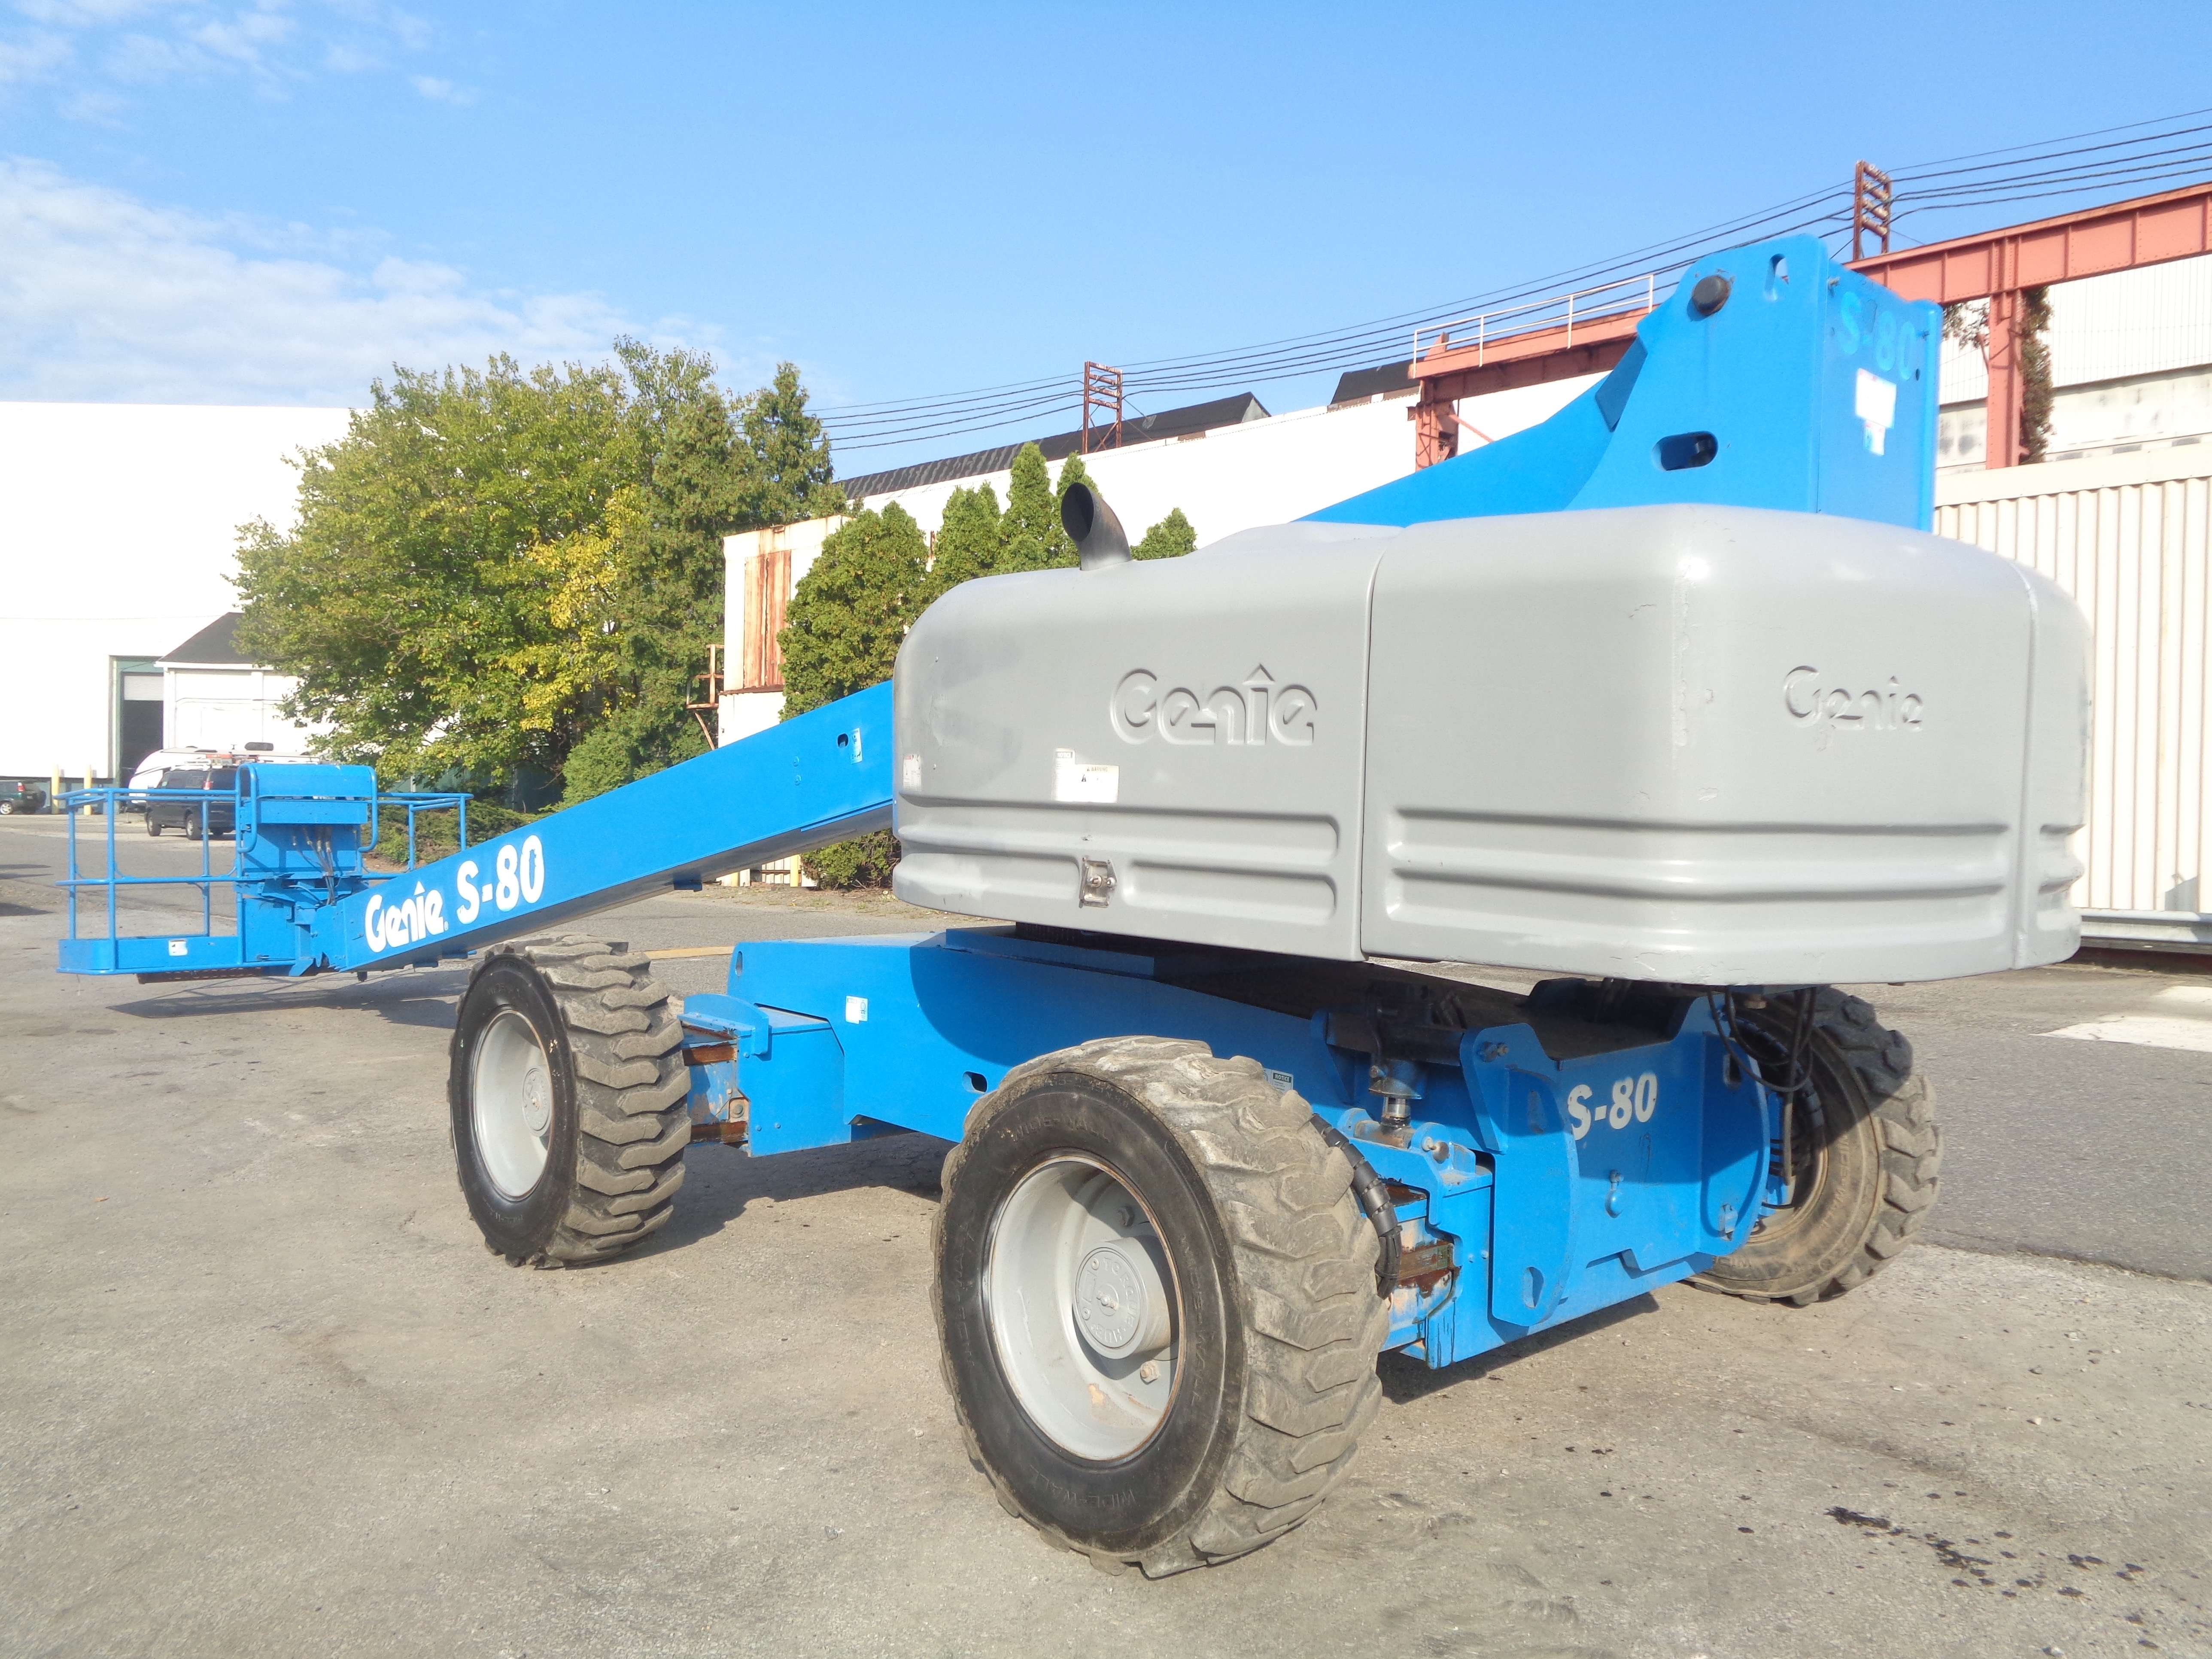 Genie S80 80ft Boom Lift - Image 6 of 22